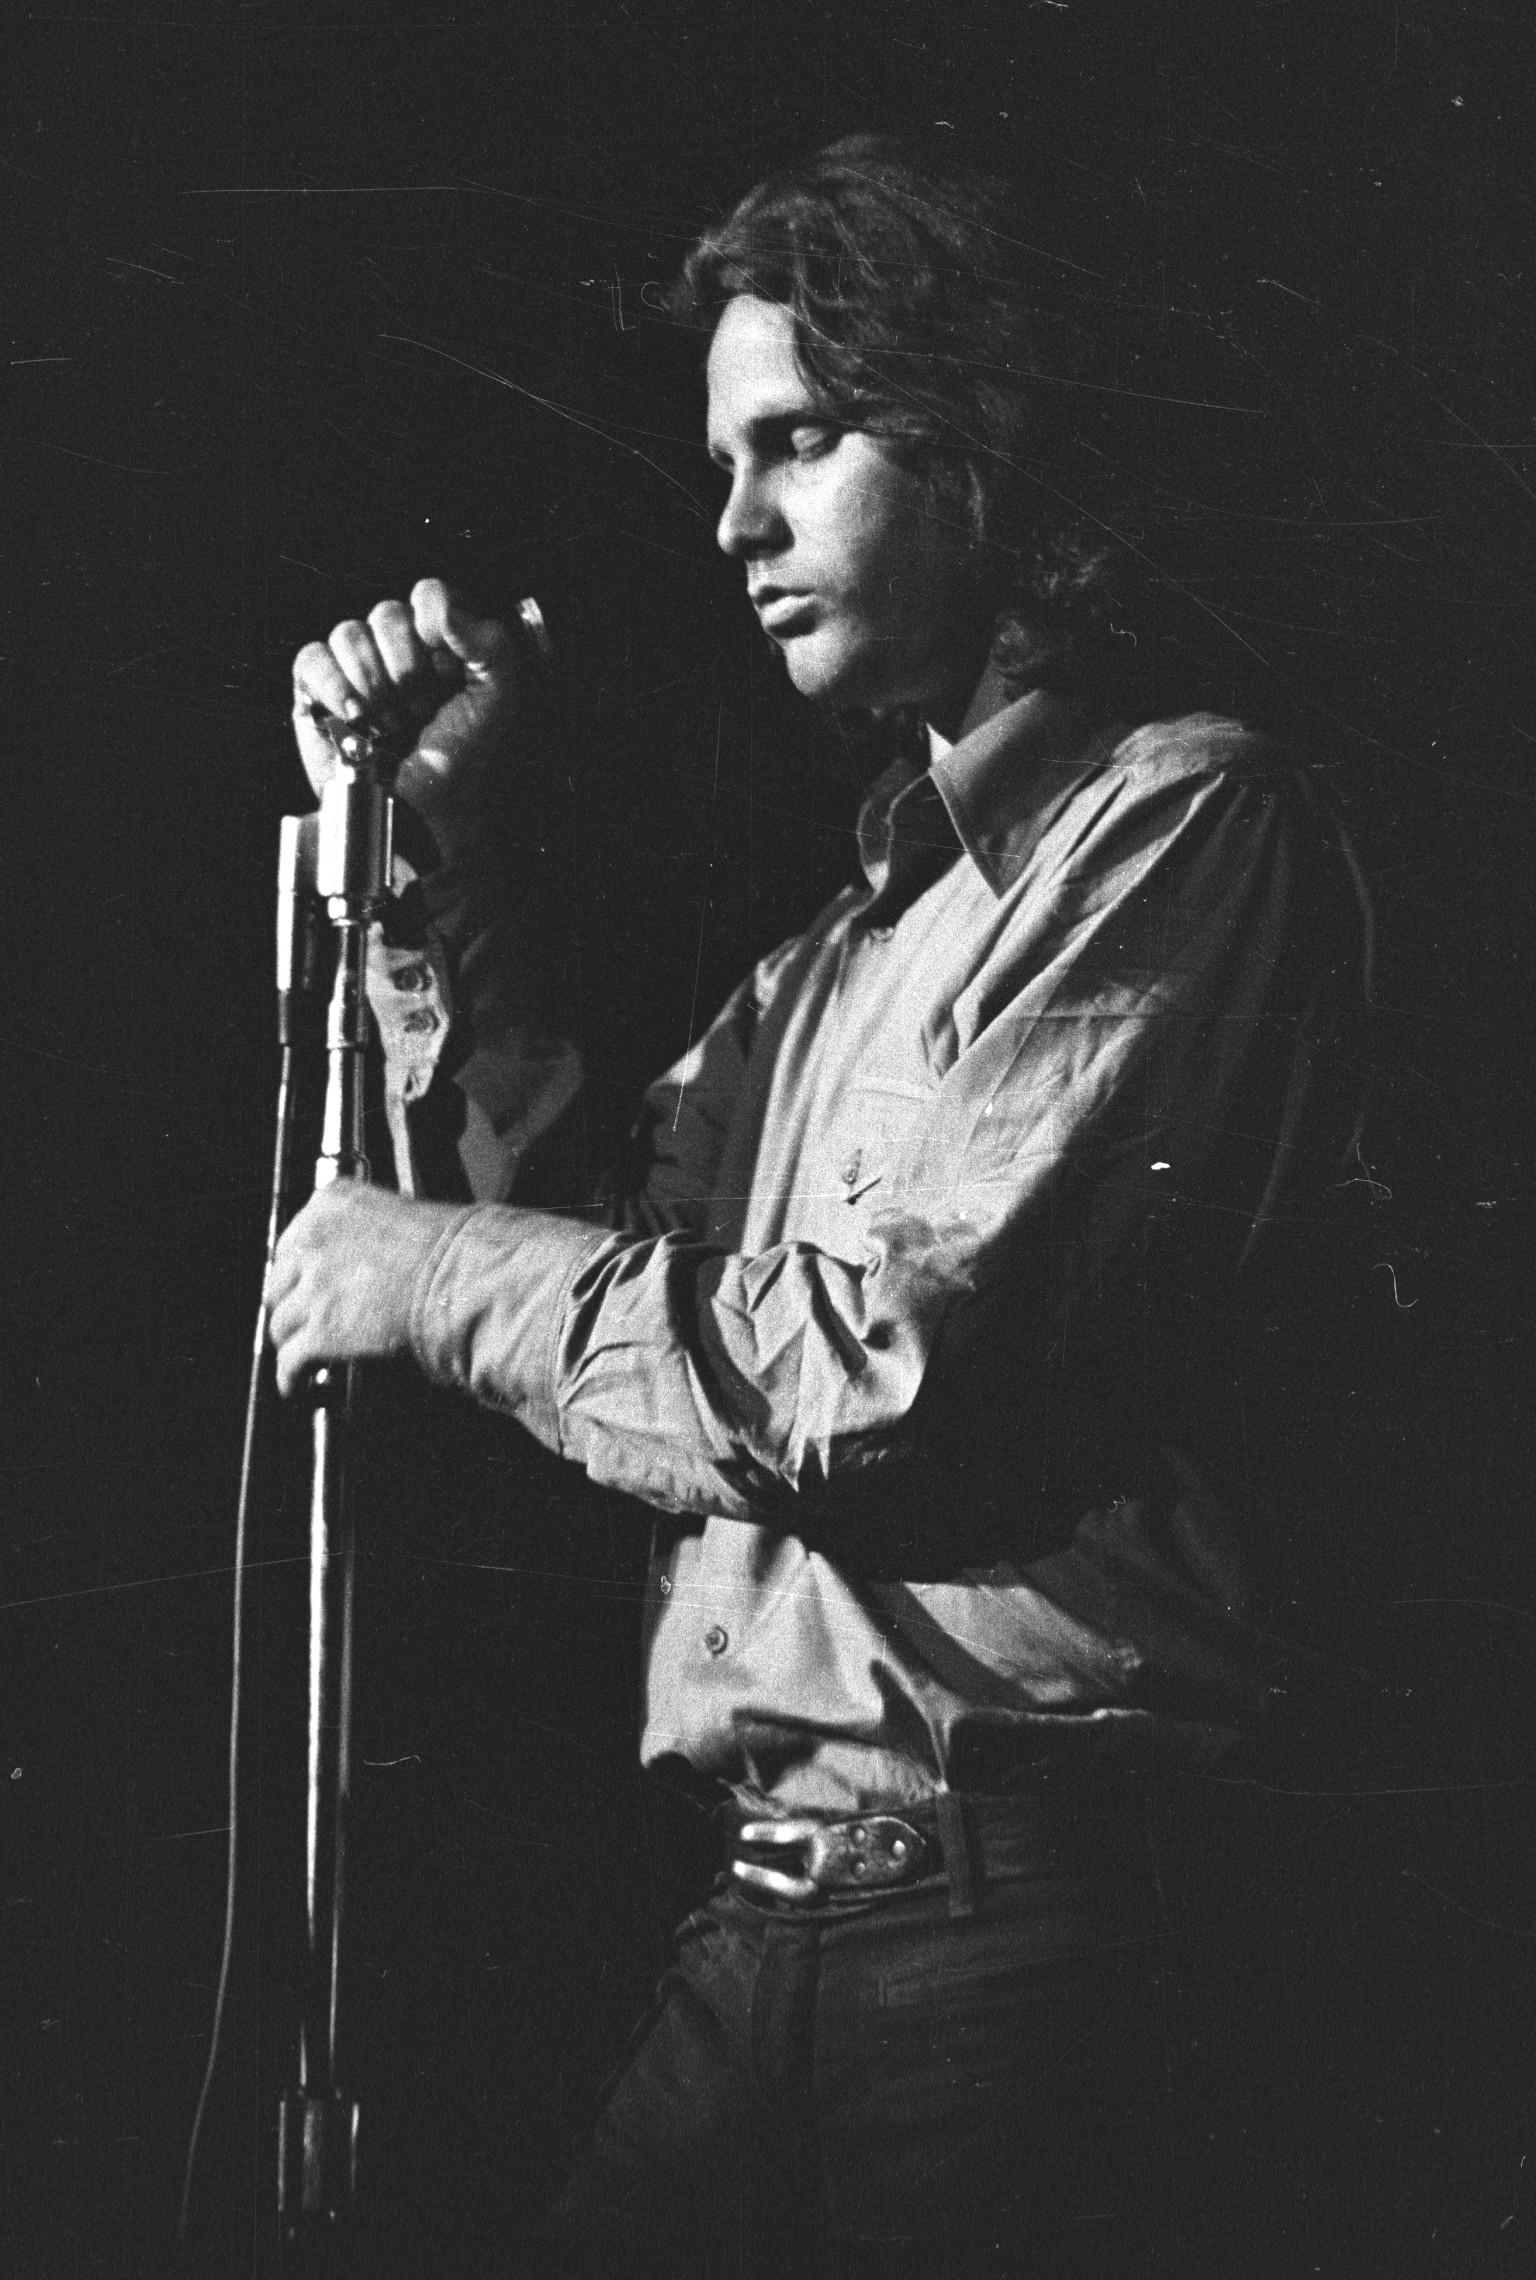 Jim Morrison Death Anniversary Iconic Lead Singer Of The